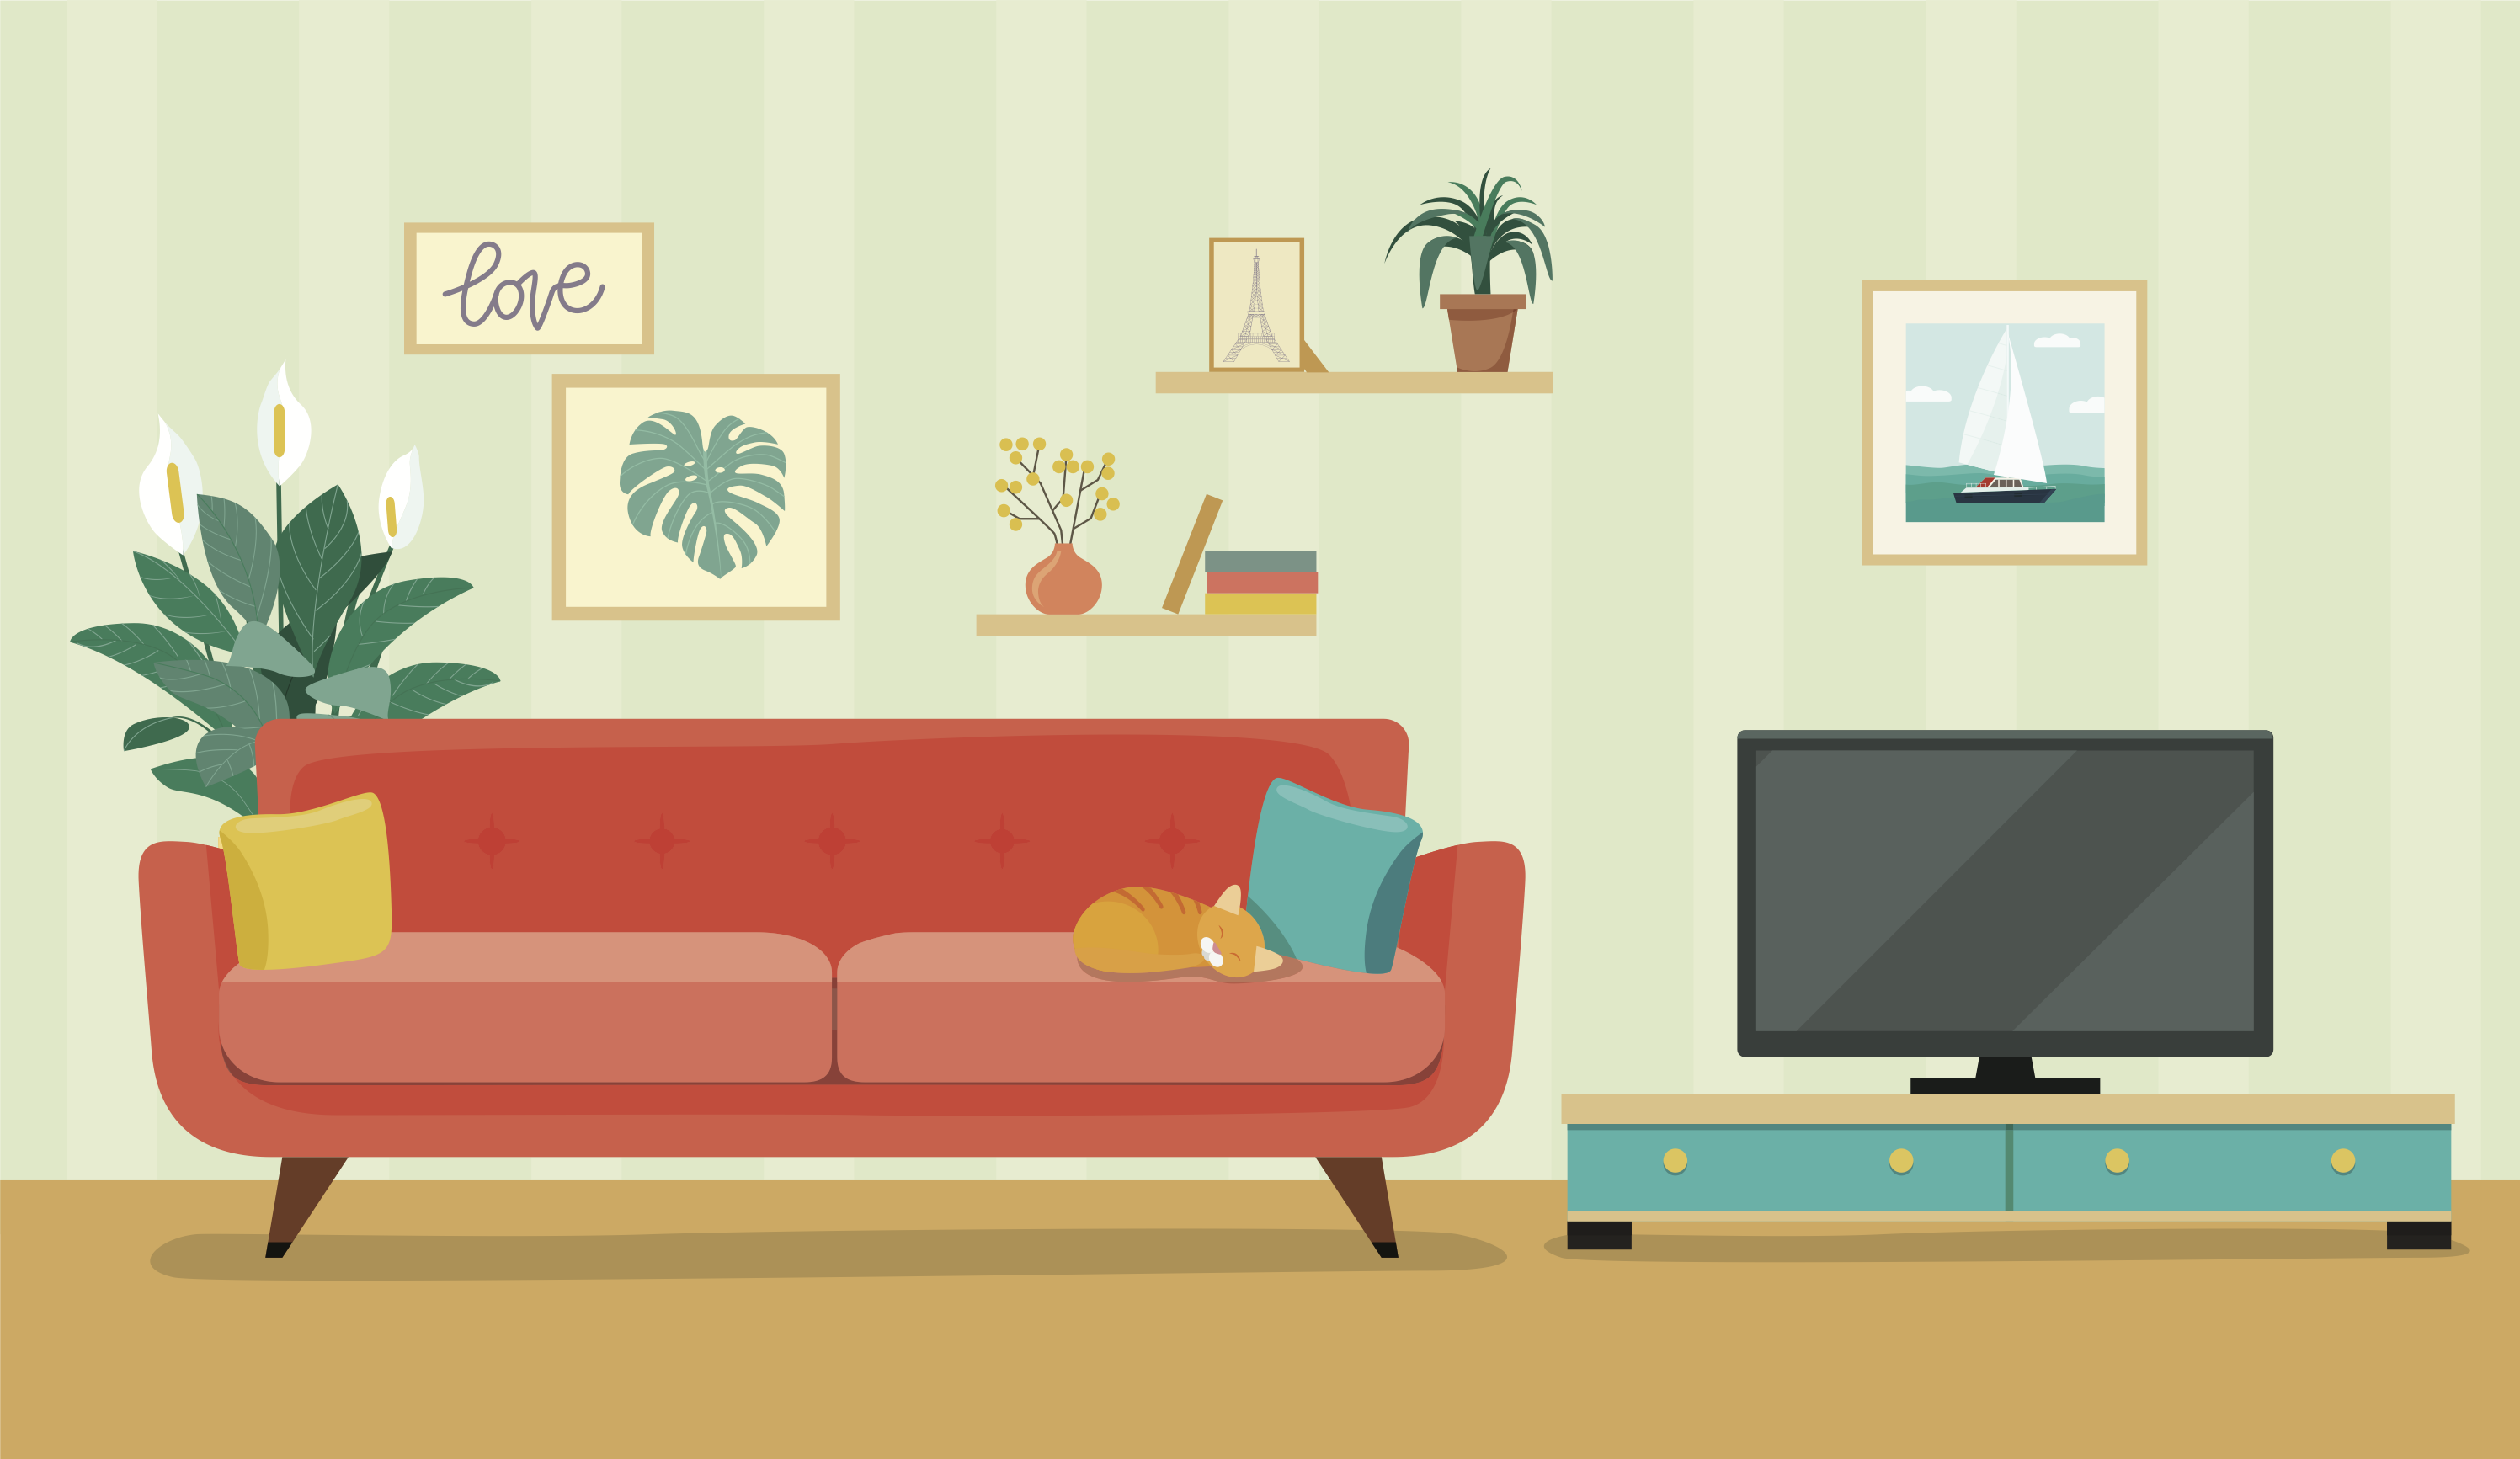 An illustration of a living room with a pink sofa, plant, decorative wall prints and a tv.